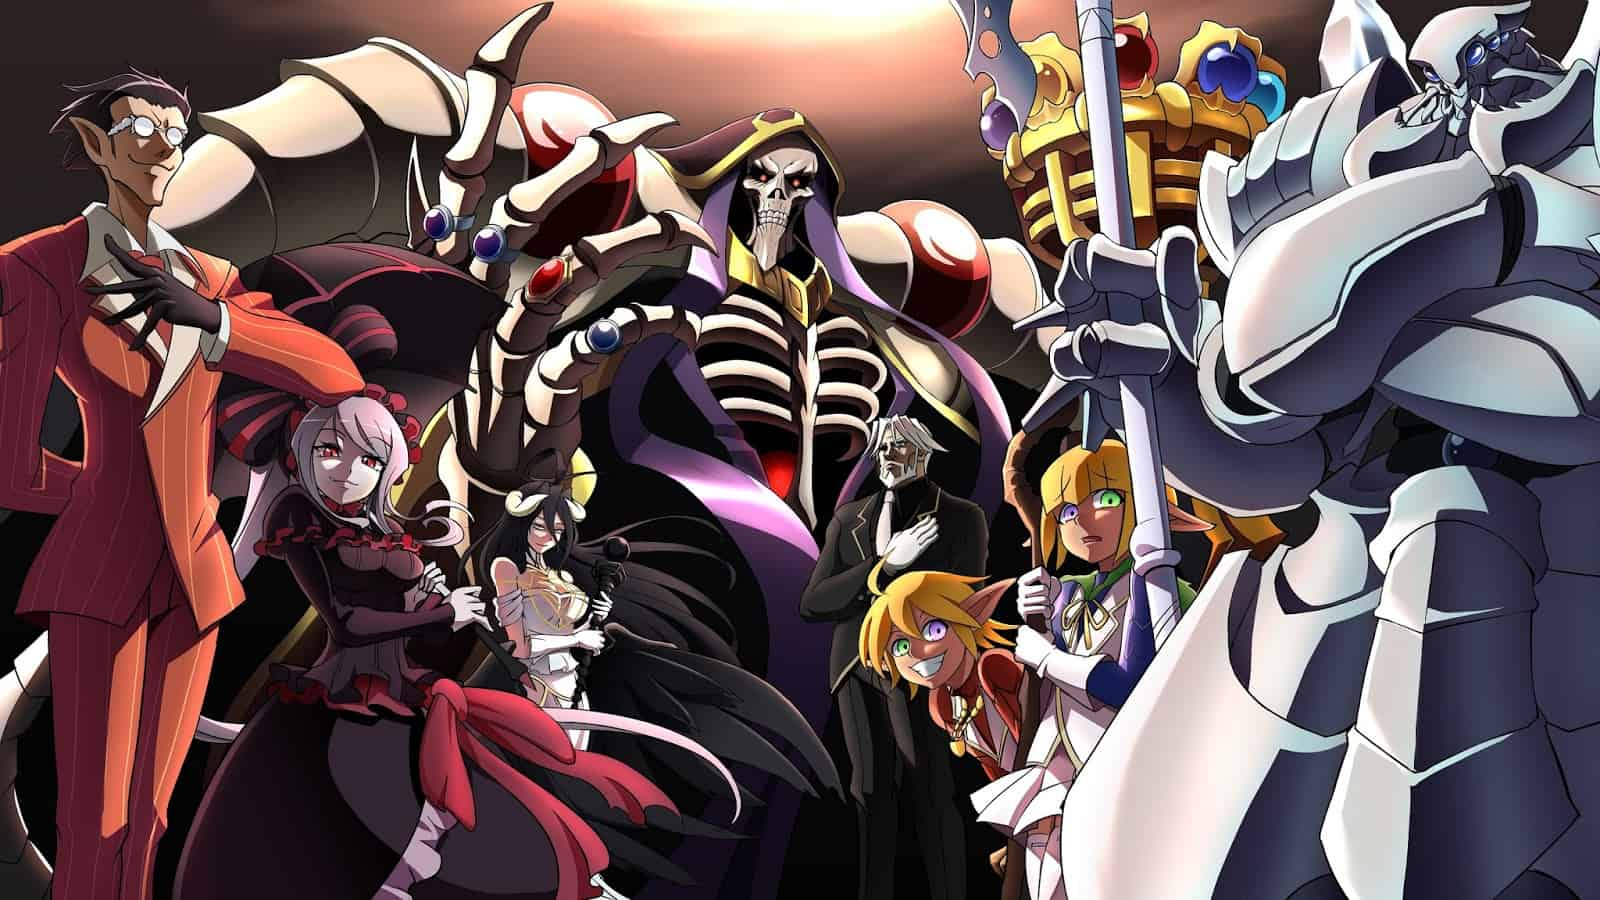 844ad overlord Top 20 Strongest Overlord Characters